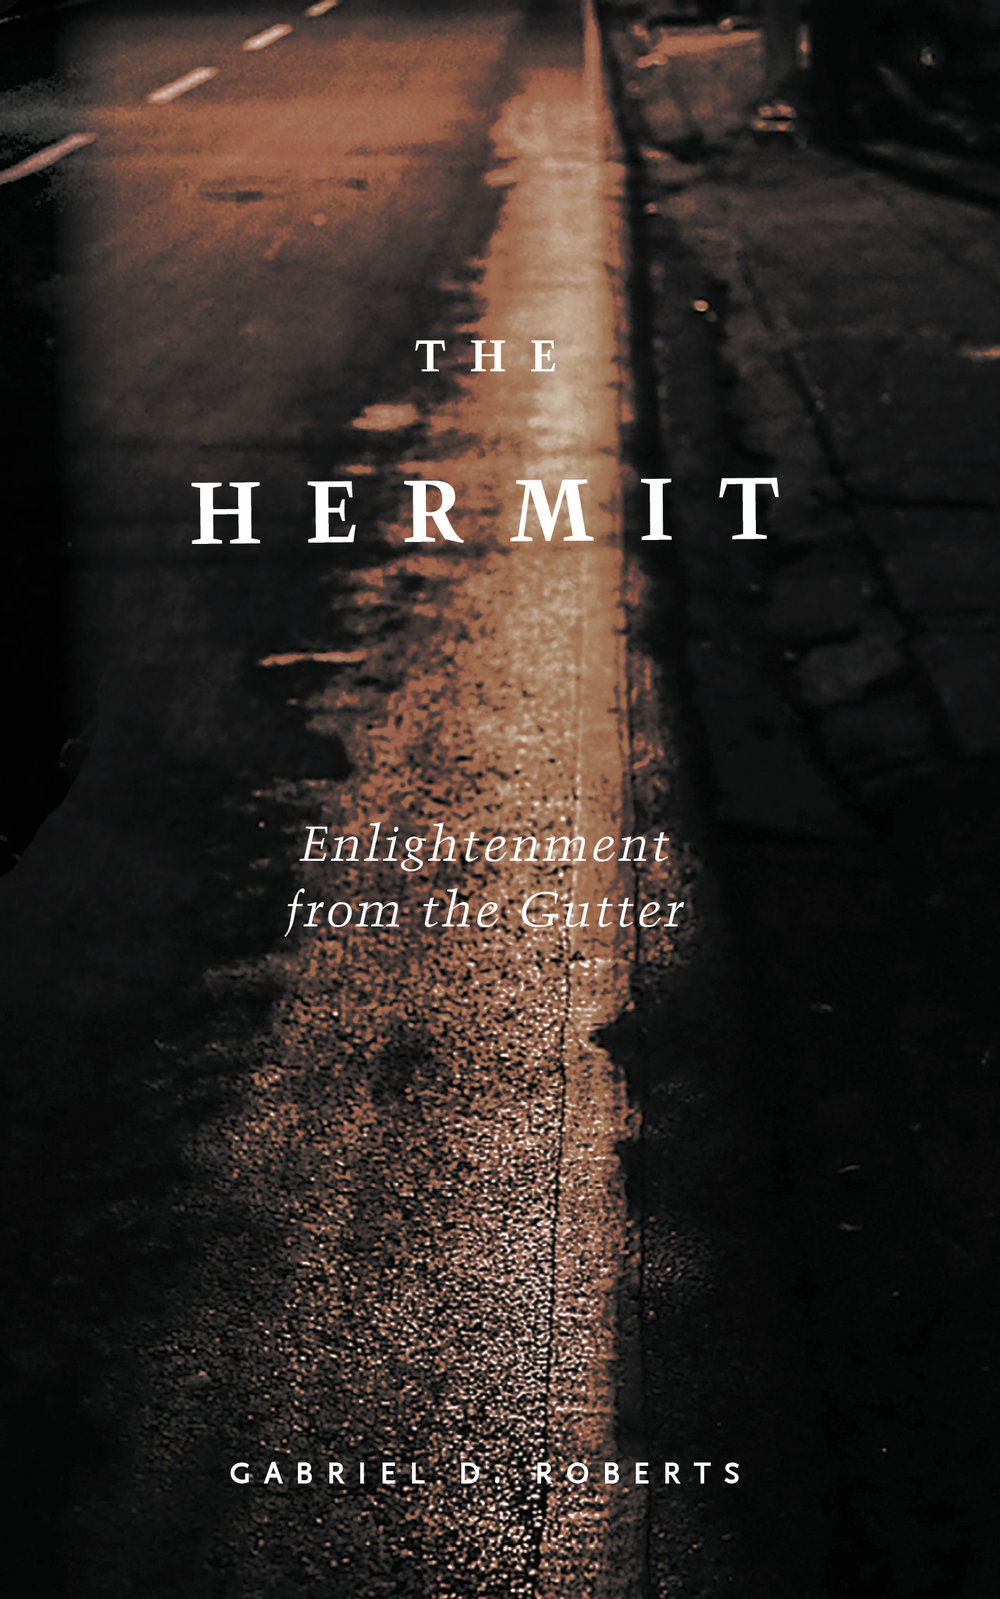 The Hermit: Enlightenment from the Gutter